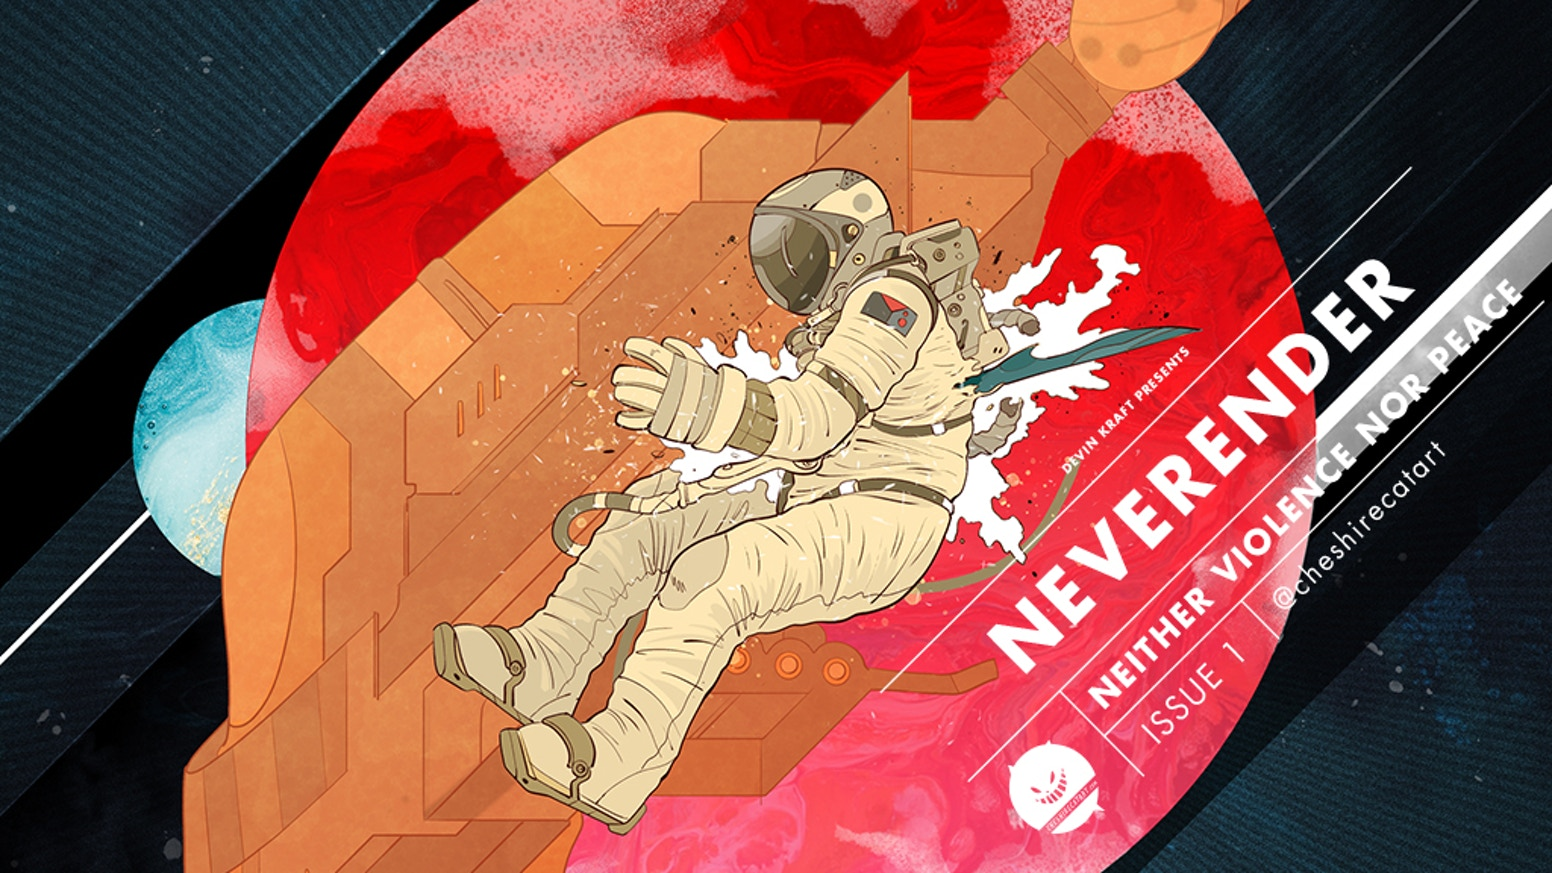 Neverender is a comic about an earthborn punk and his journey into a space dueling ring.